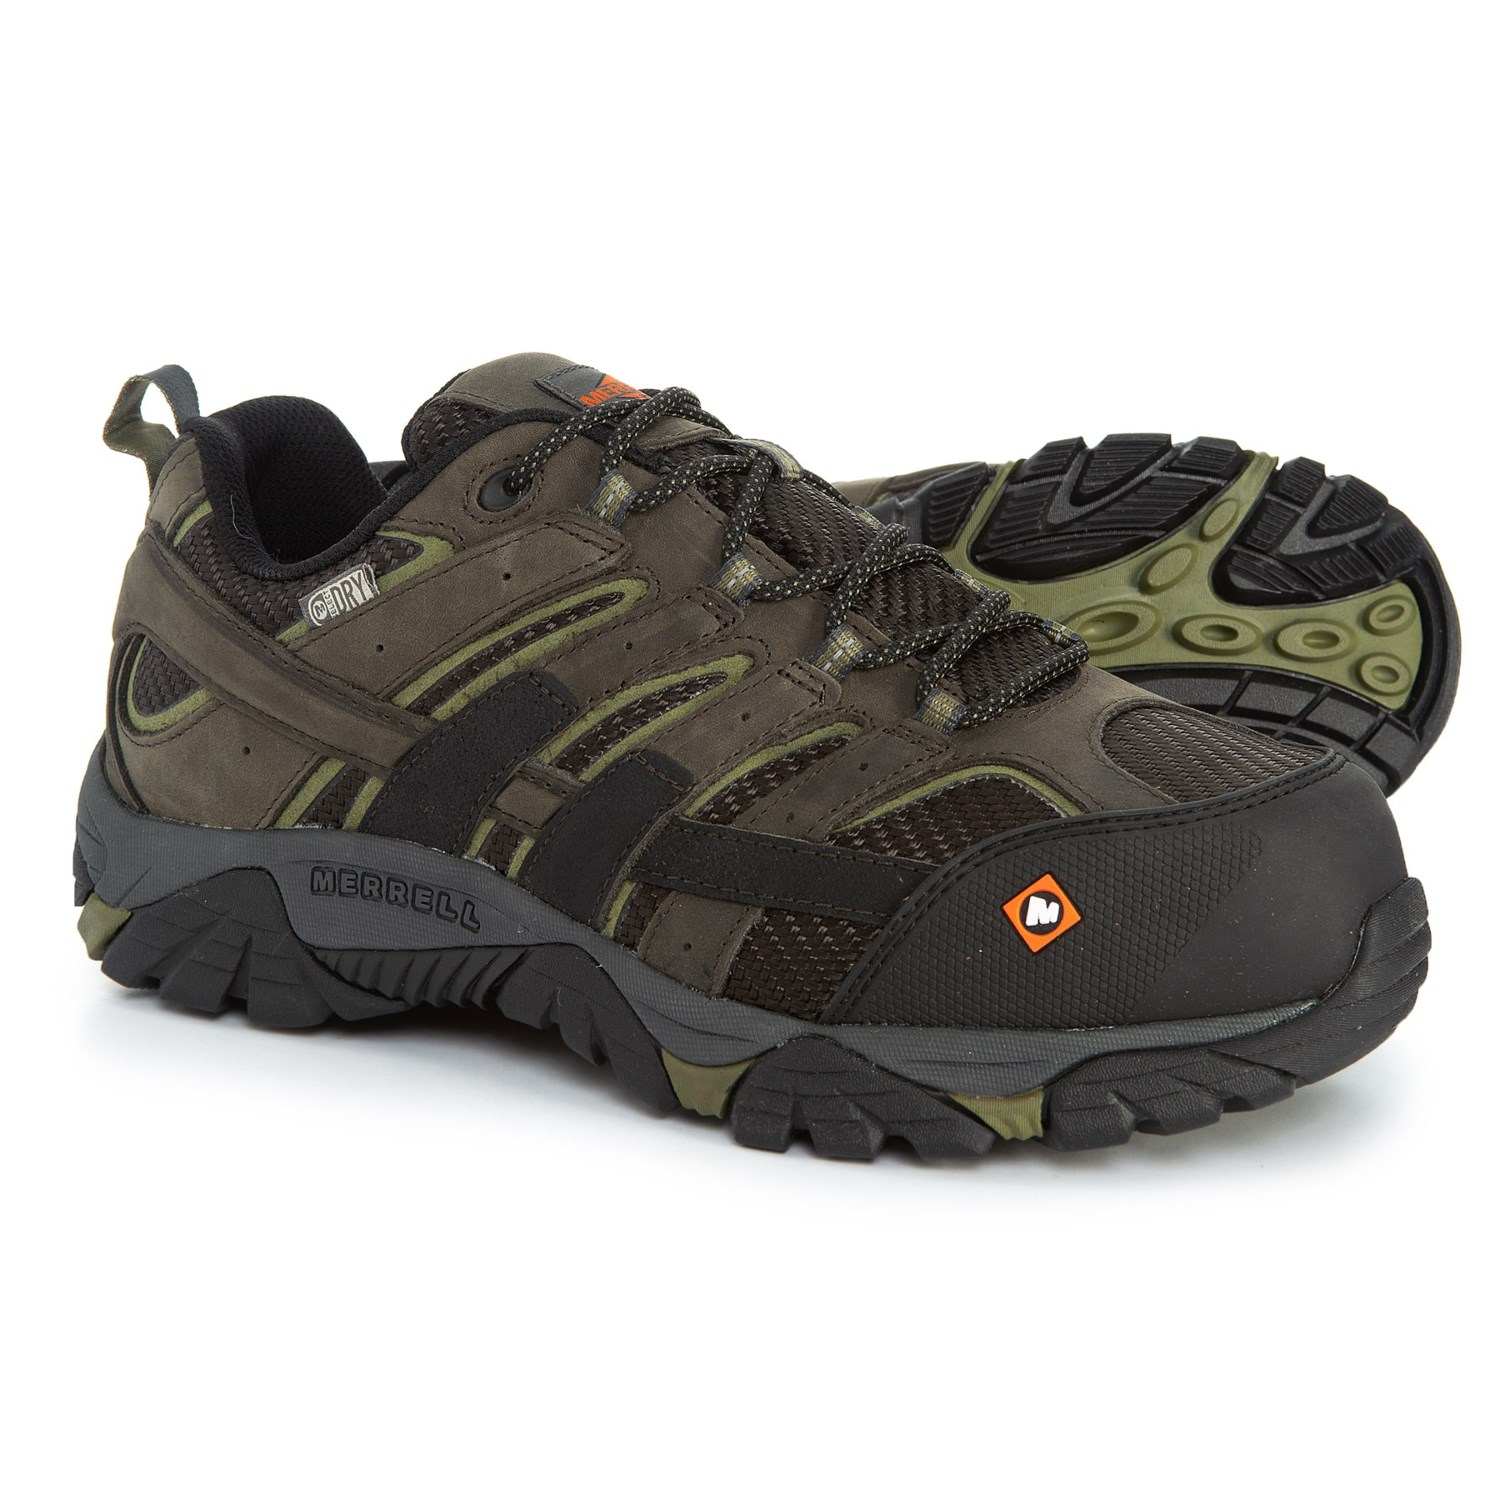 Merrell Moab 2 Vent Work Shoes For Men Save 50